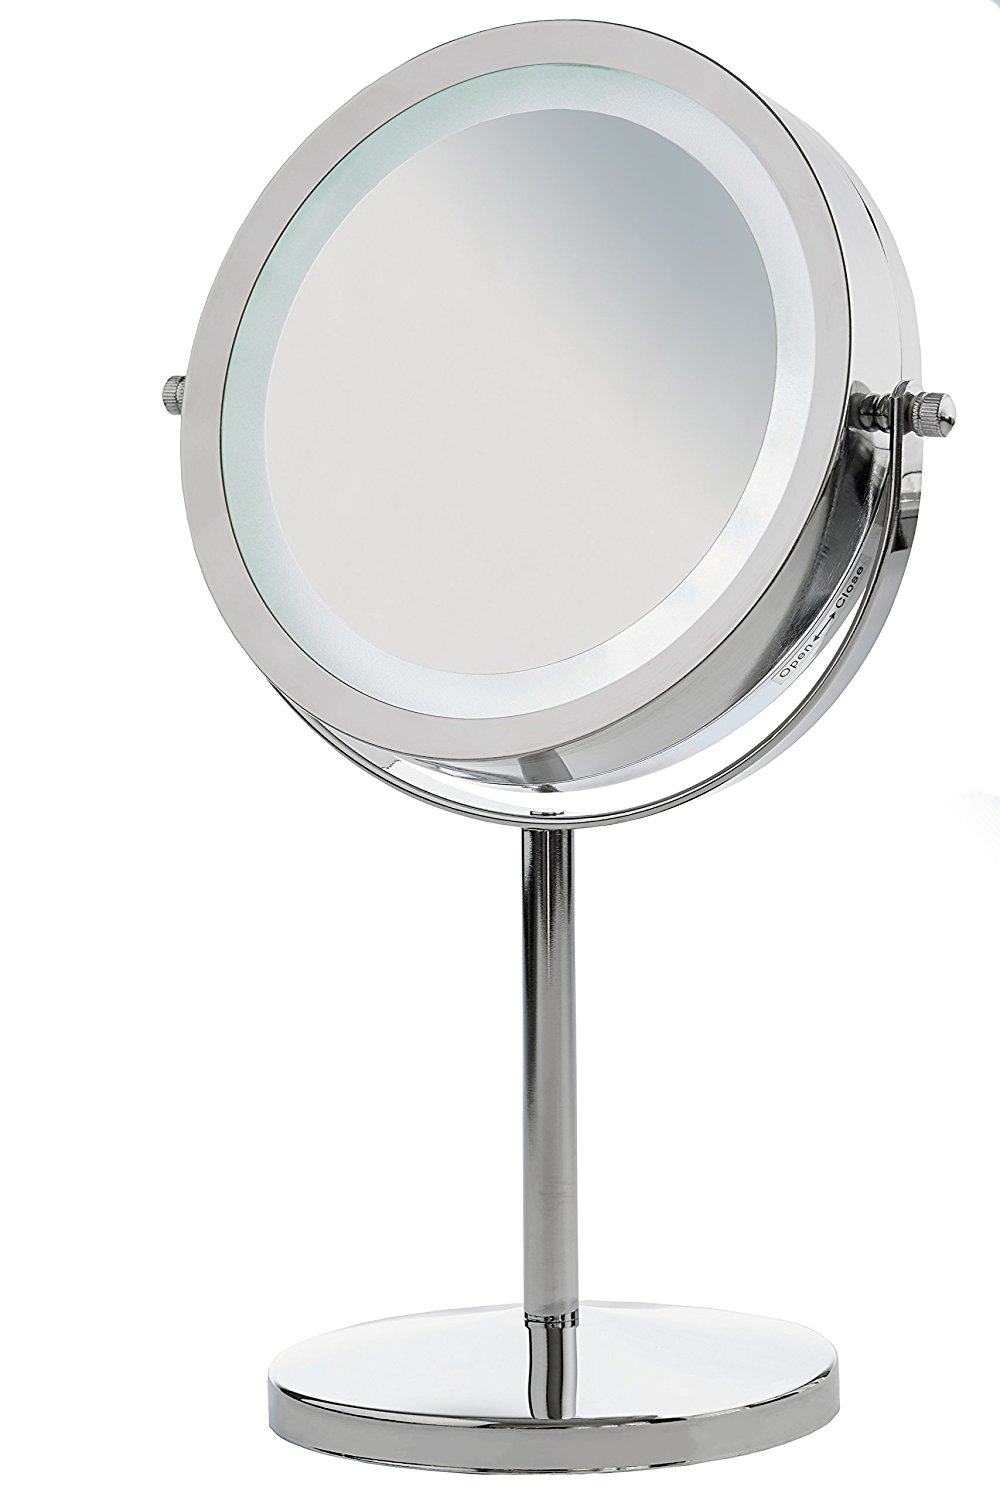 Double Sided Magnifying Mirror | Makeup Mirror with Lights Walmart | Conair Lighted Makeup Mirror